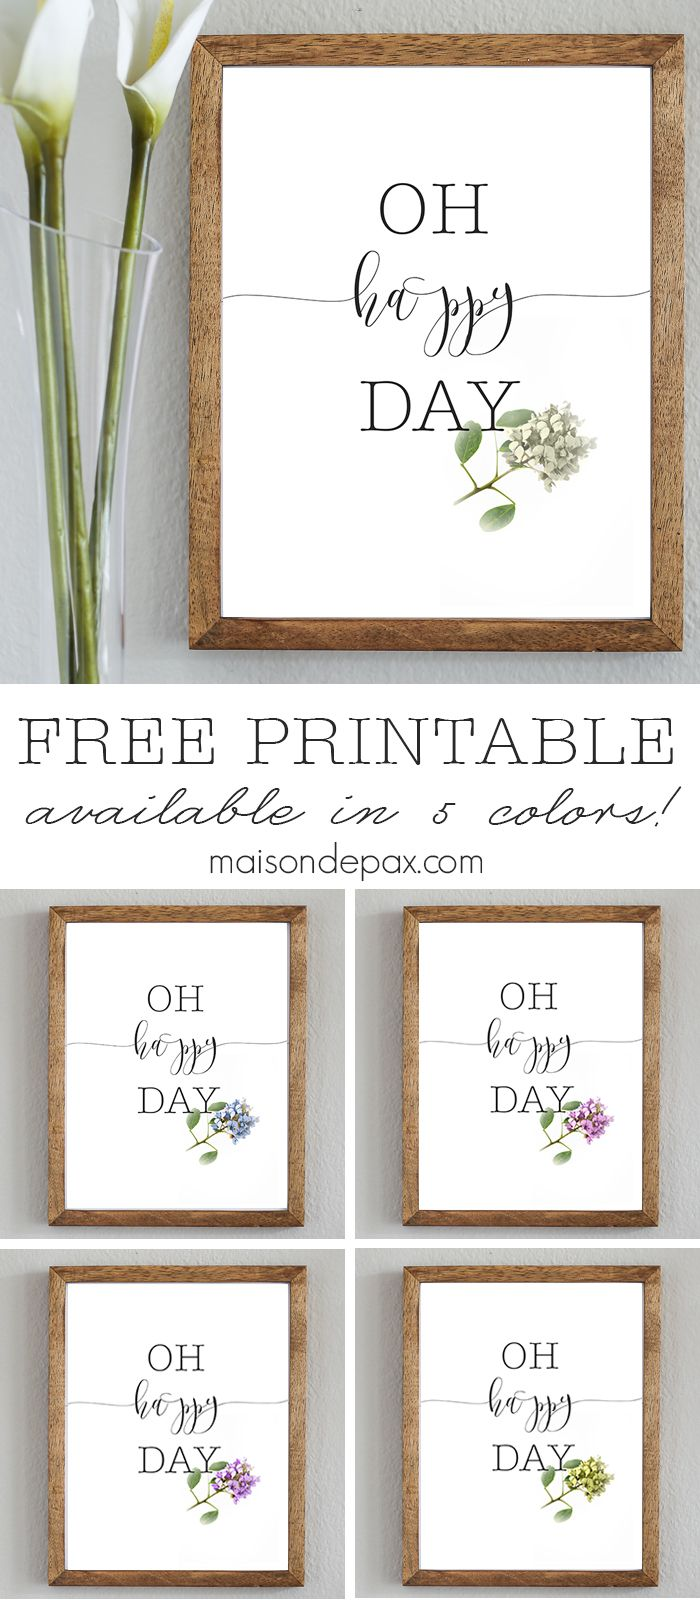 Oh Happy Day   Free spring printable available in 5 colors from maisondepax.com